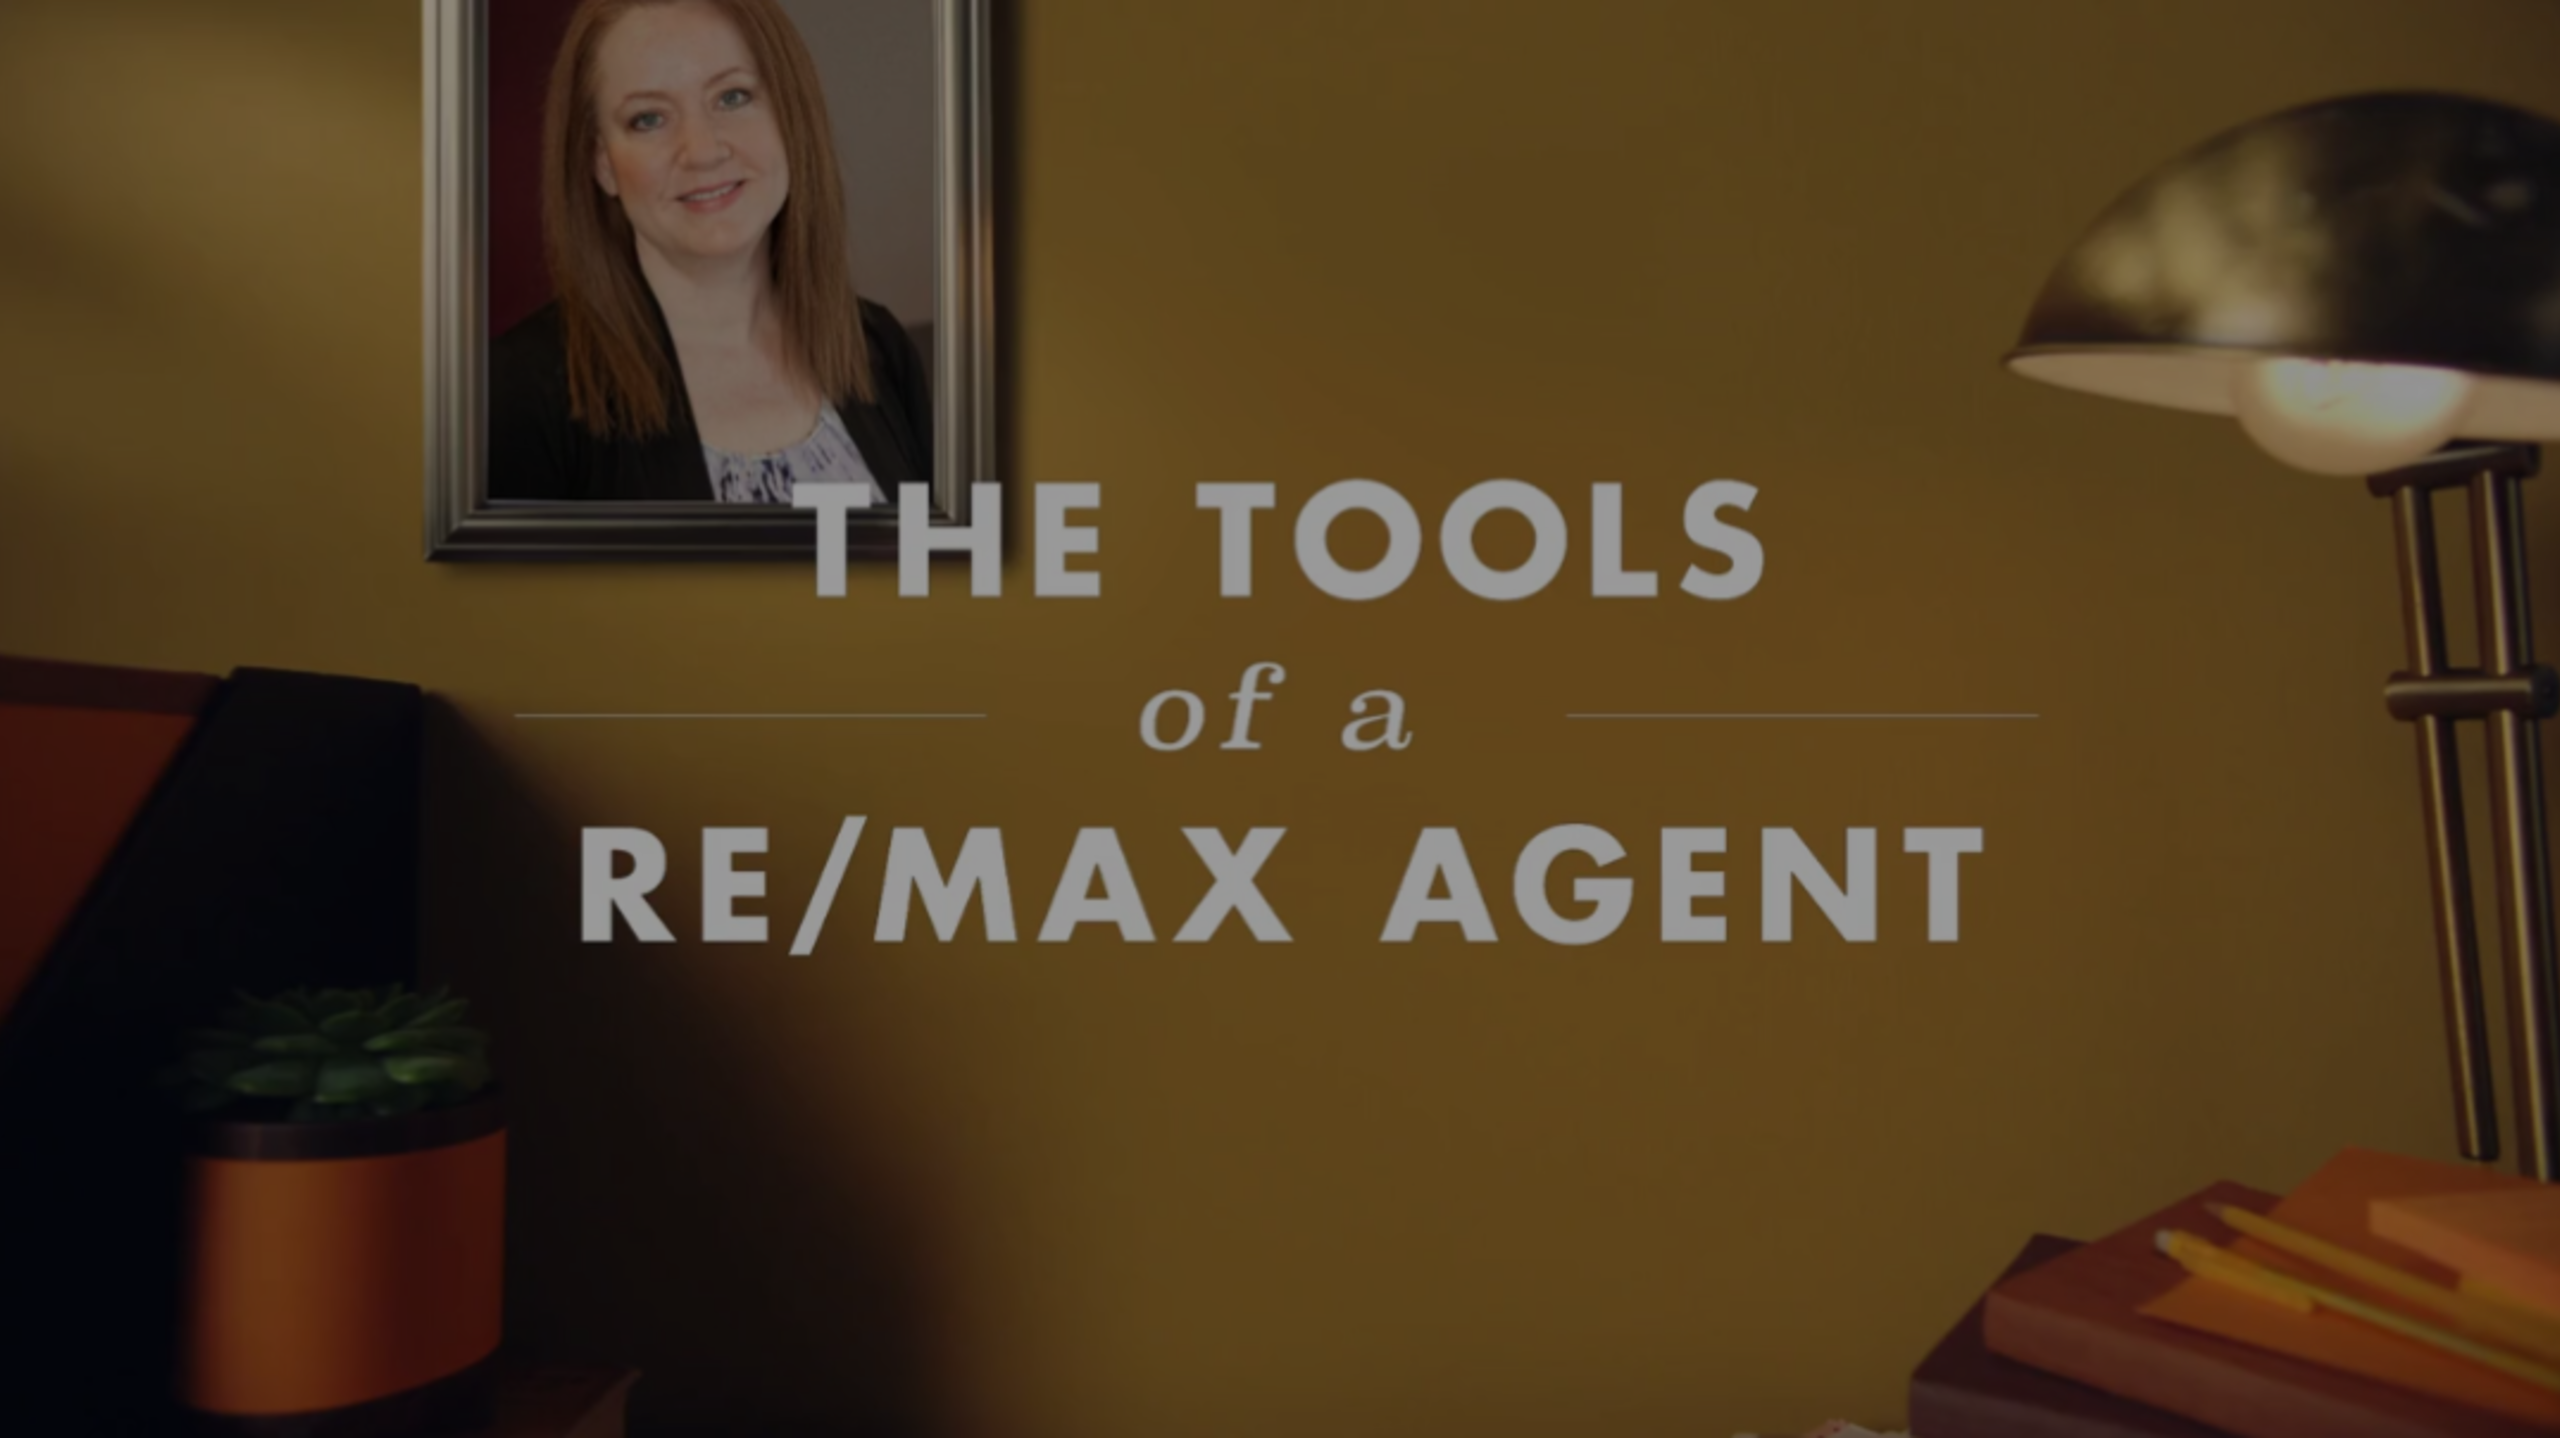 The Tammy Mrotek Team has the tools, the experience and the know-how to go from For Sale to Sold!